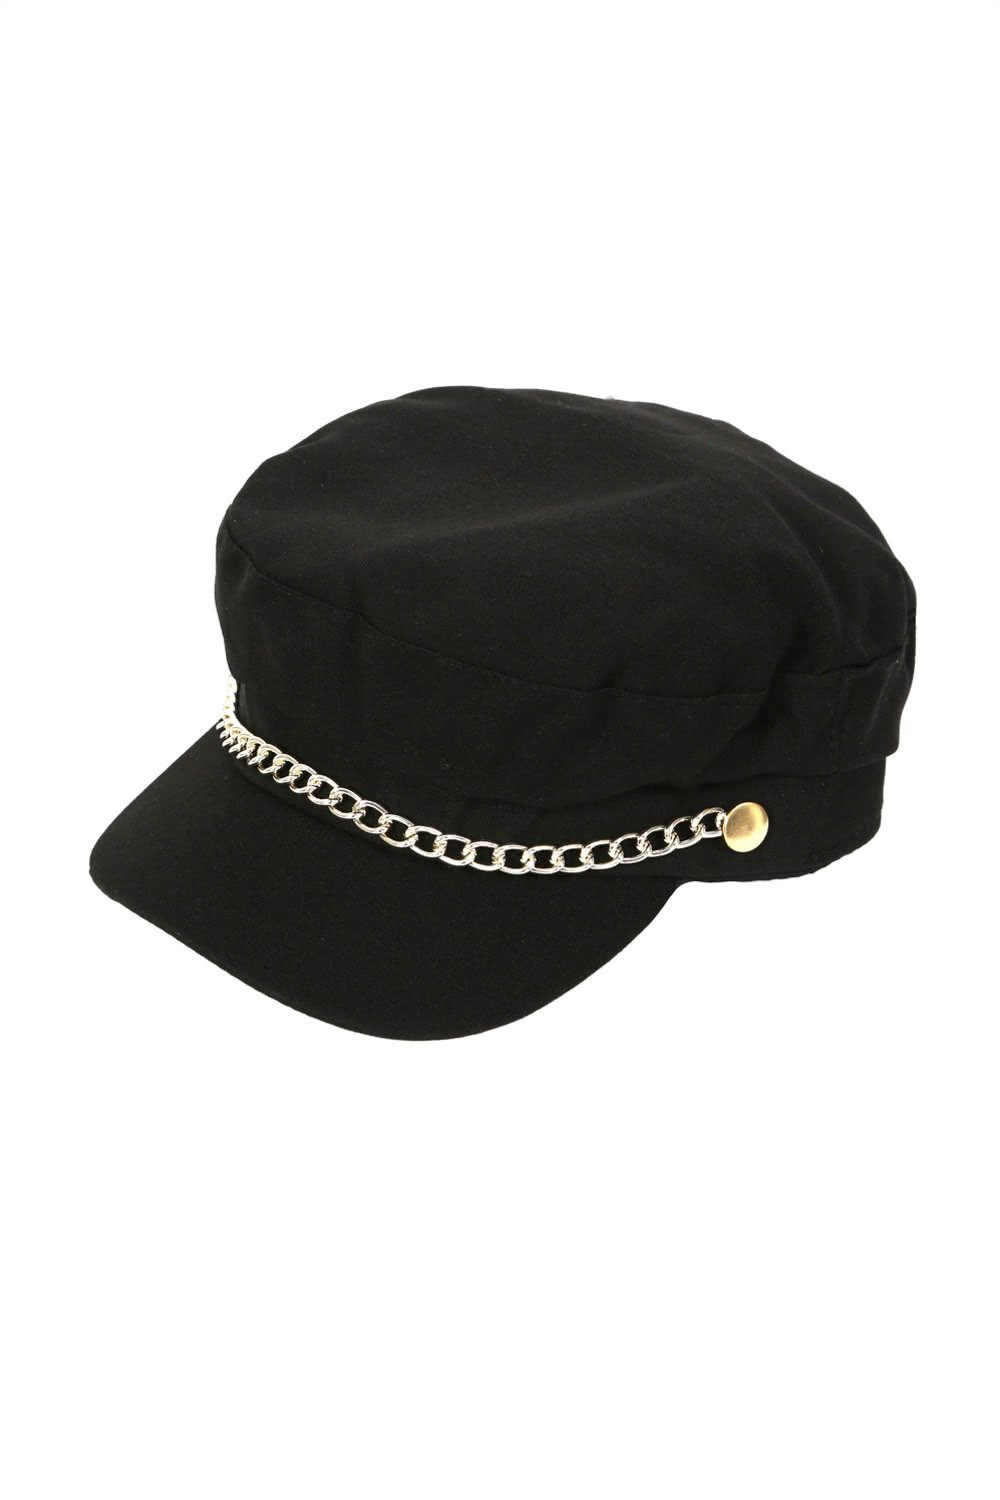 Hats - Chain Detail Baker Boy Hat In Black